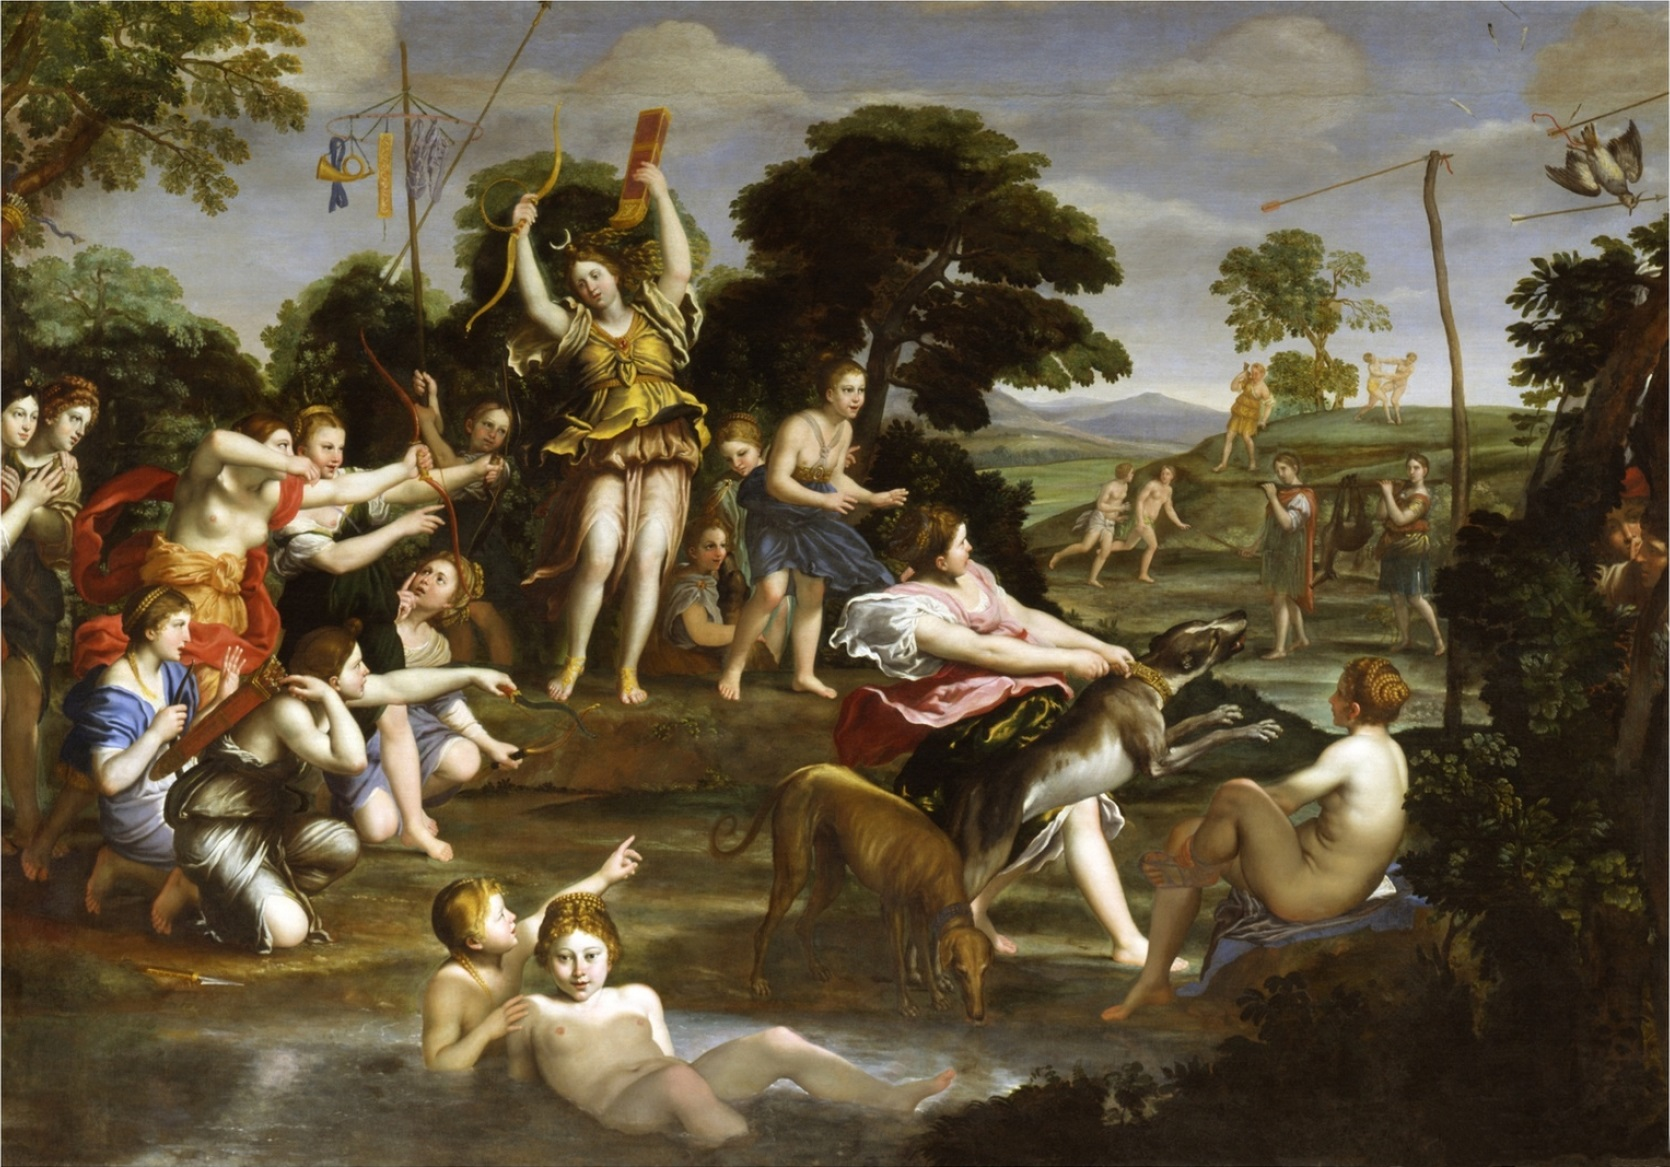 https://upload.wikimedia.org/wikipedia/commons/e/e6/Domenichino_-_La_caccia_di_Diana_%28Galleria_Borghese%29.jpg